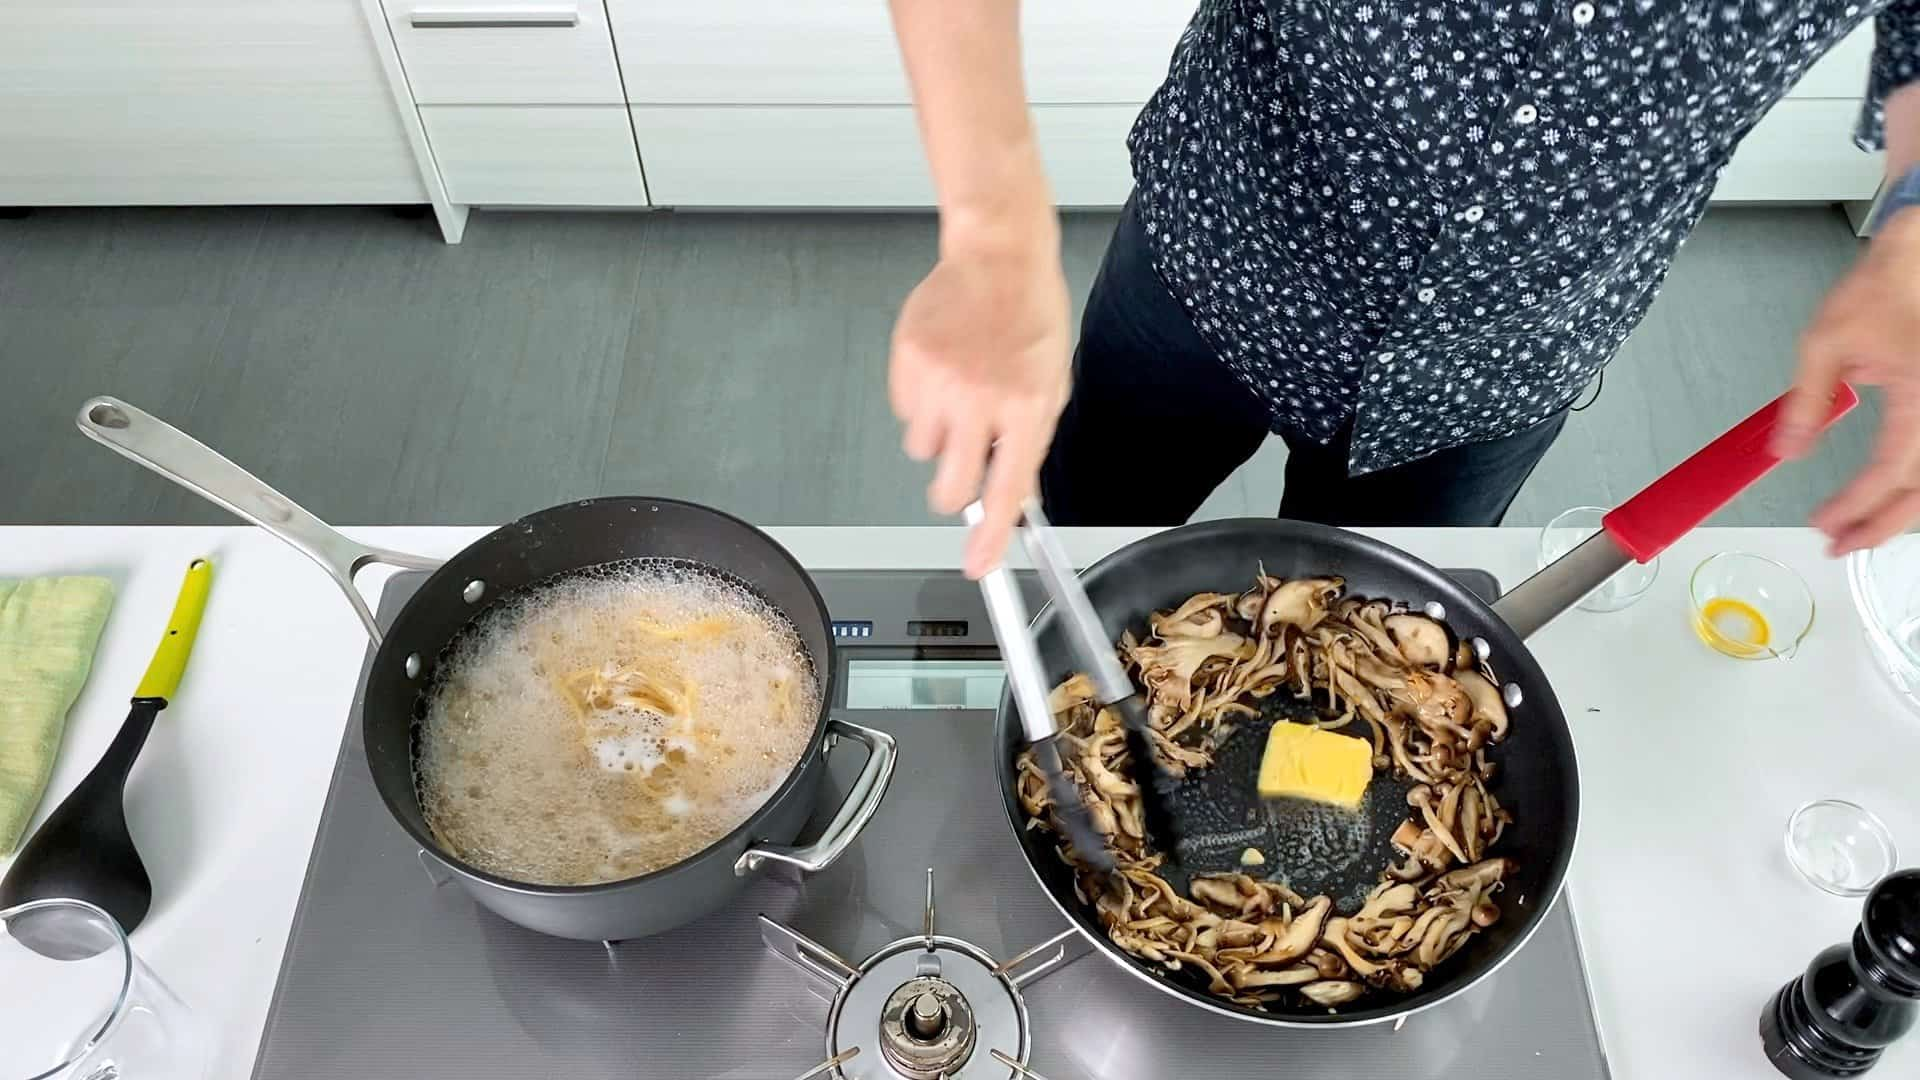 Adding butter to fried mushrooms.